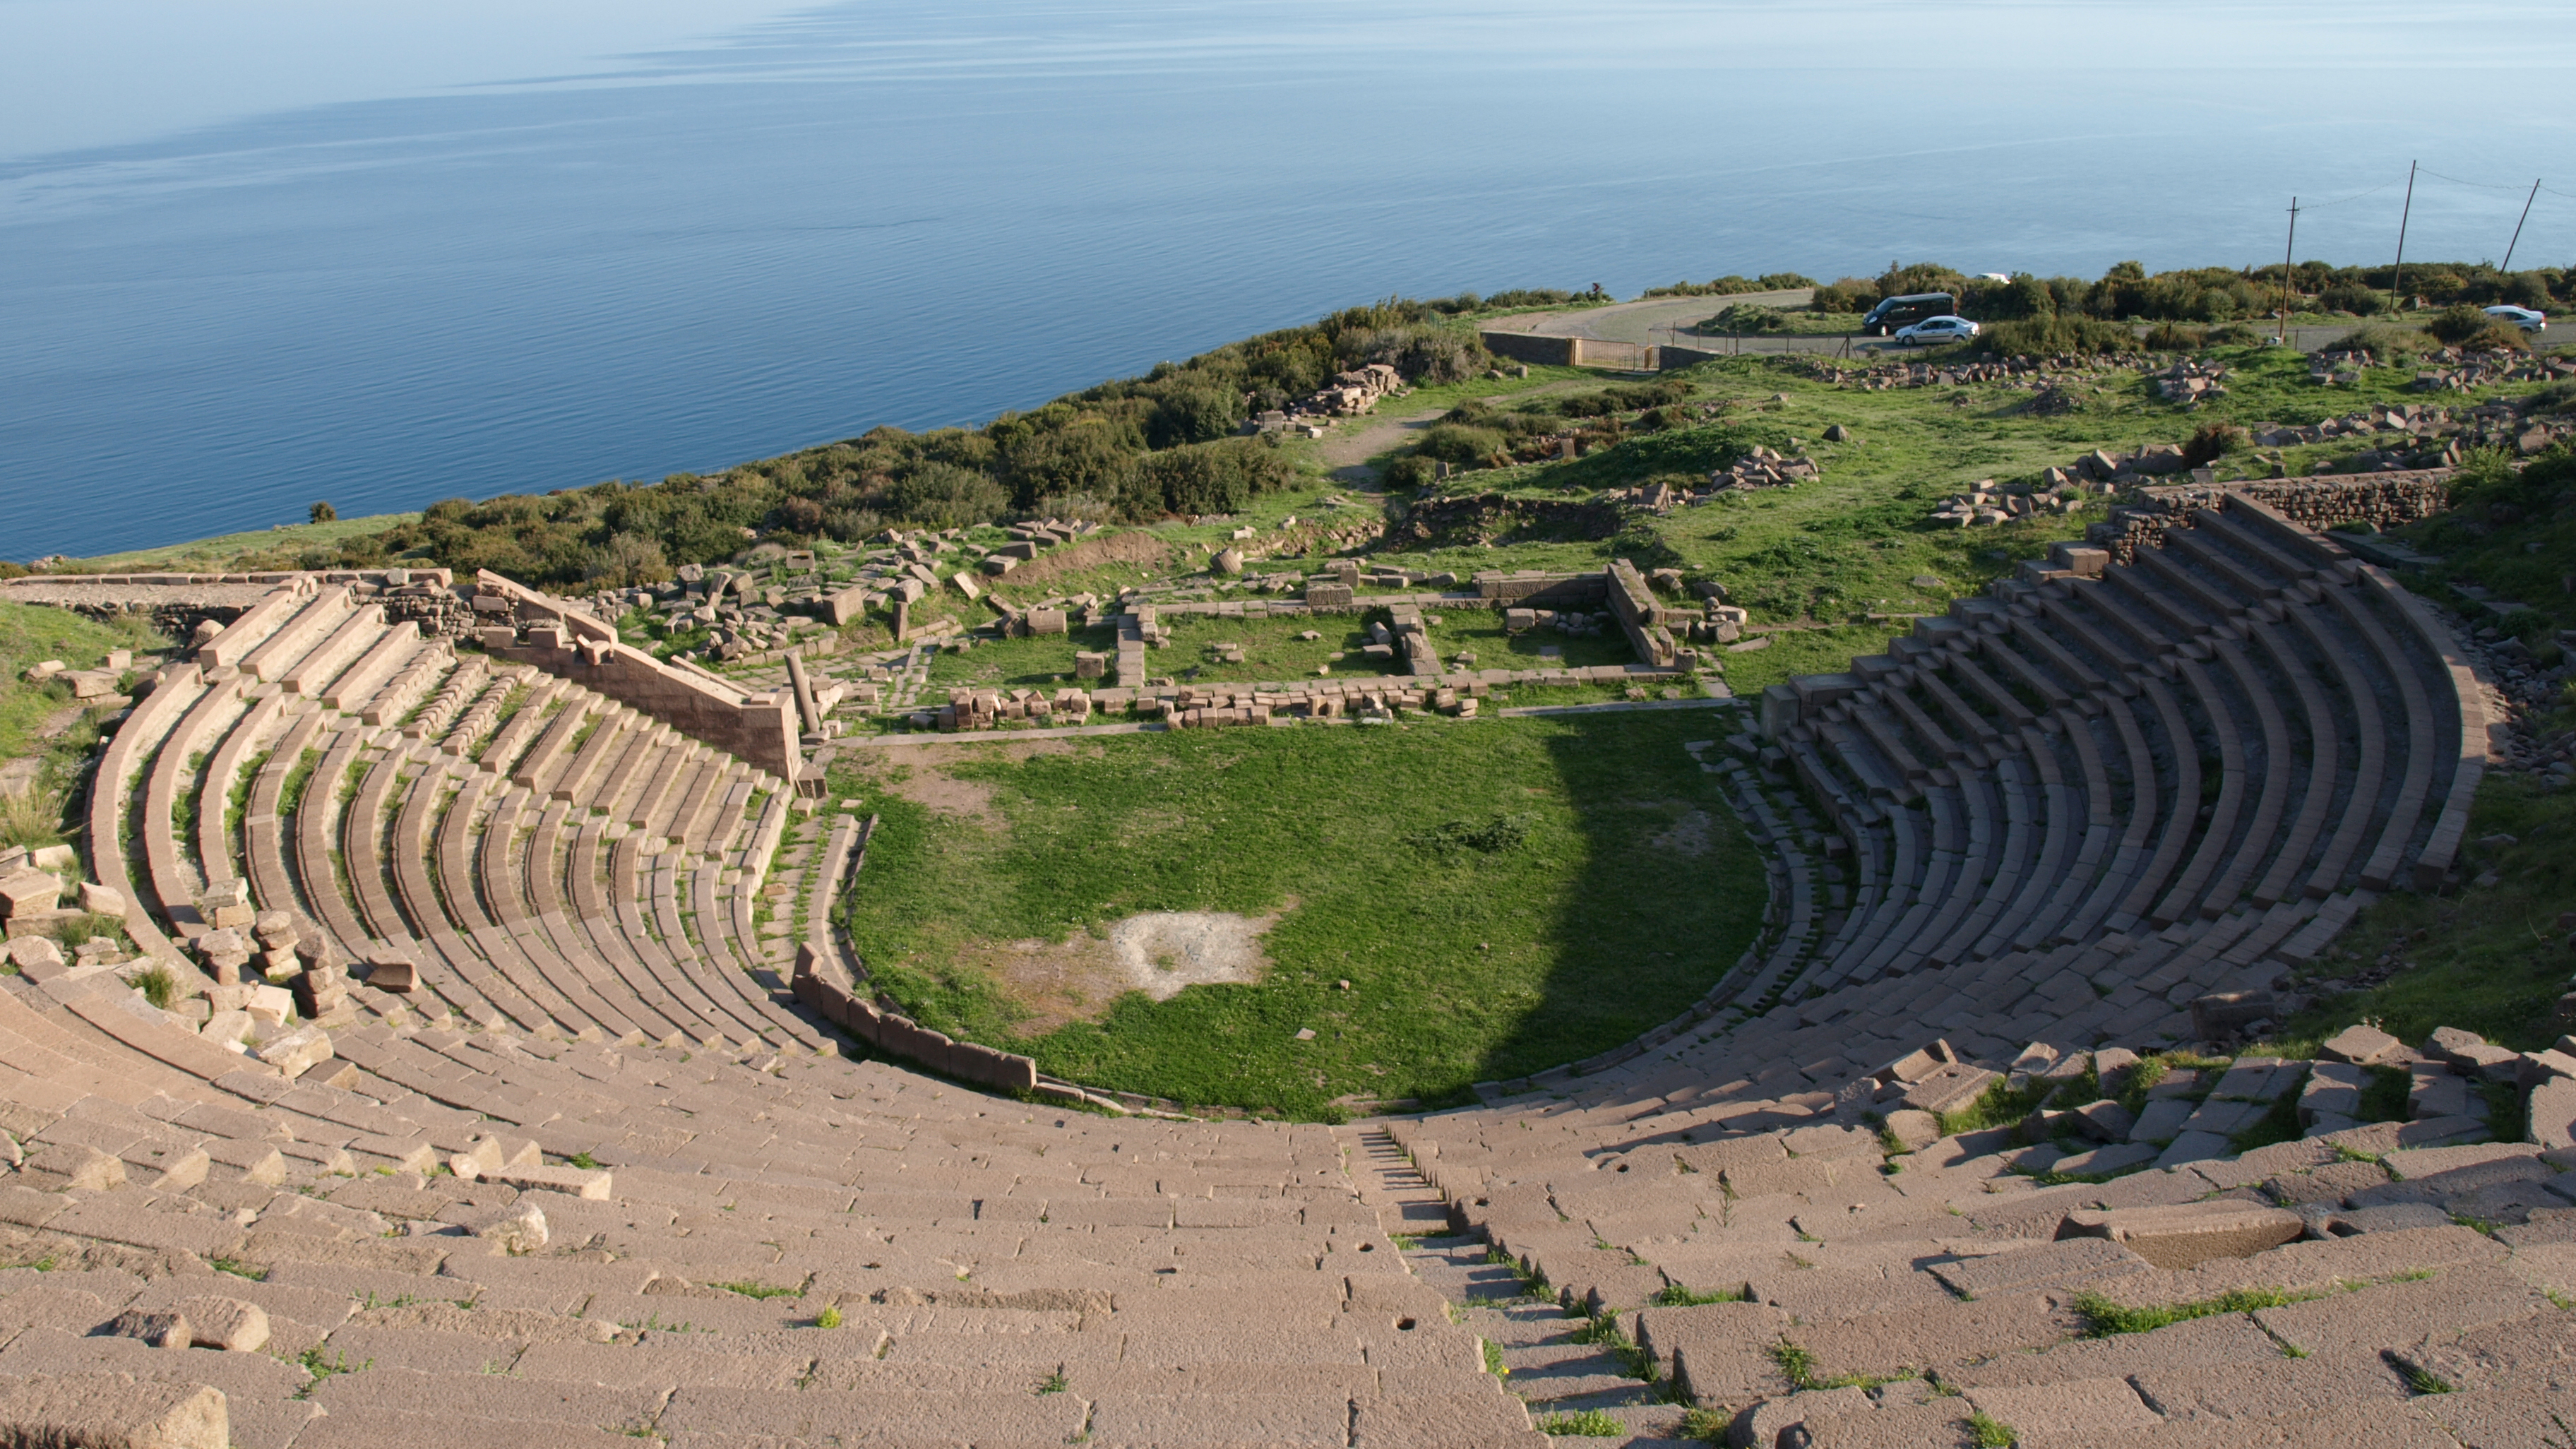 The ancient Theatre of Assos overlooking the Aegean Sea, with the nearby island of Lesbos on the horizon, at right.